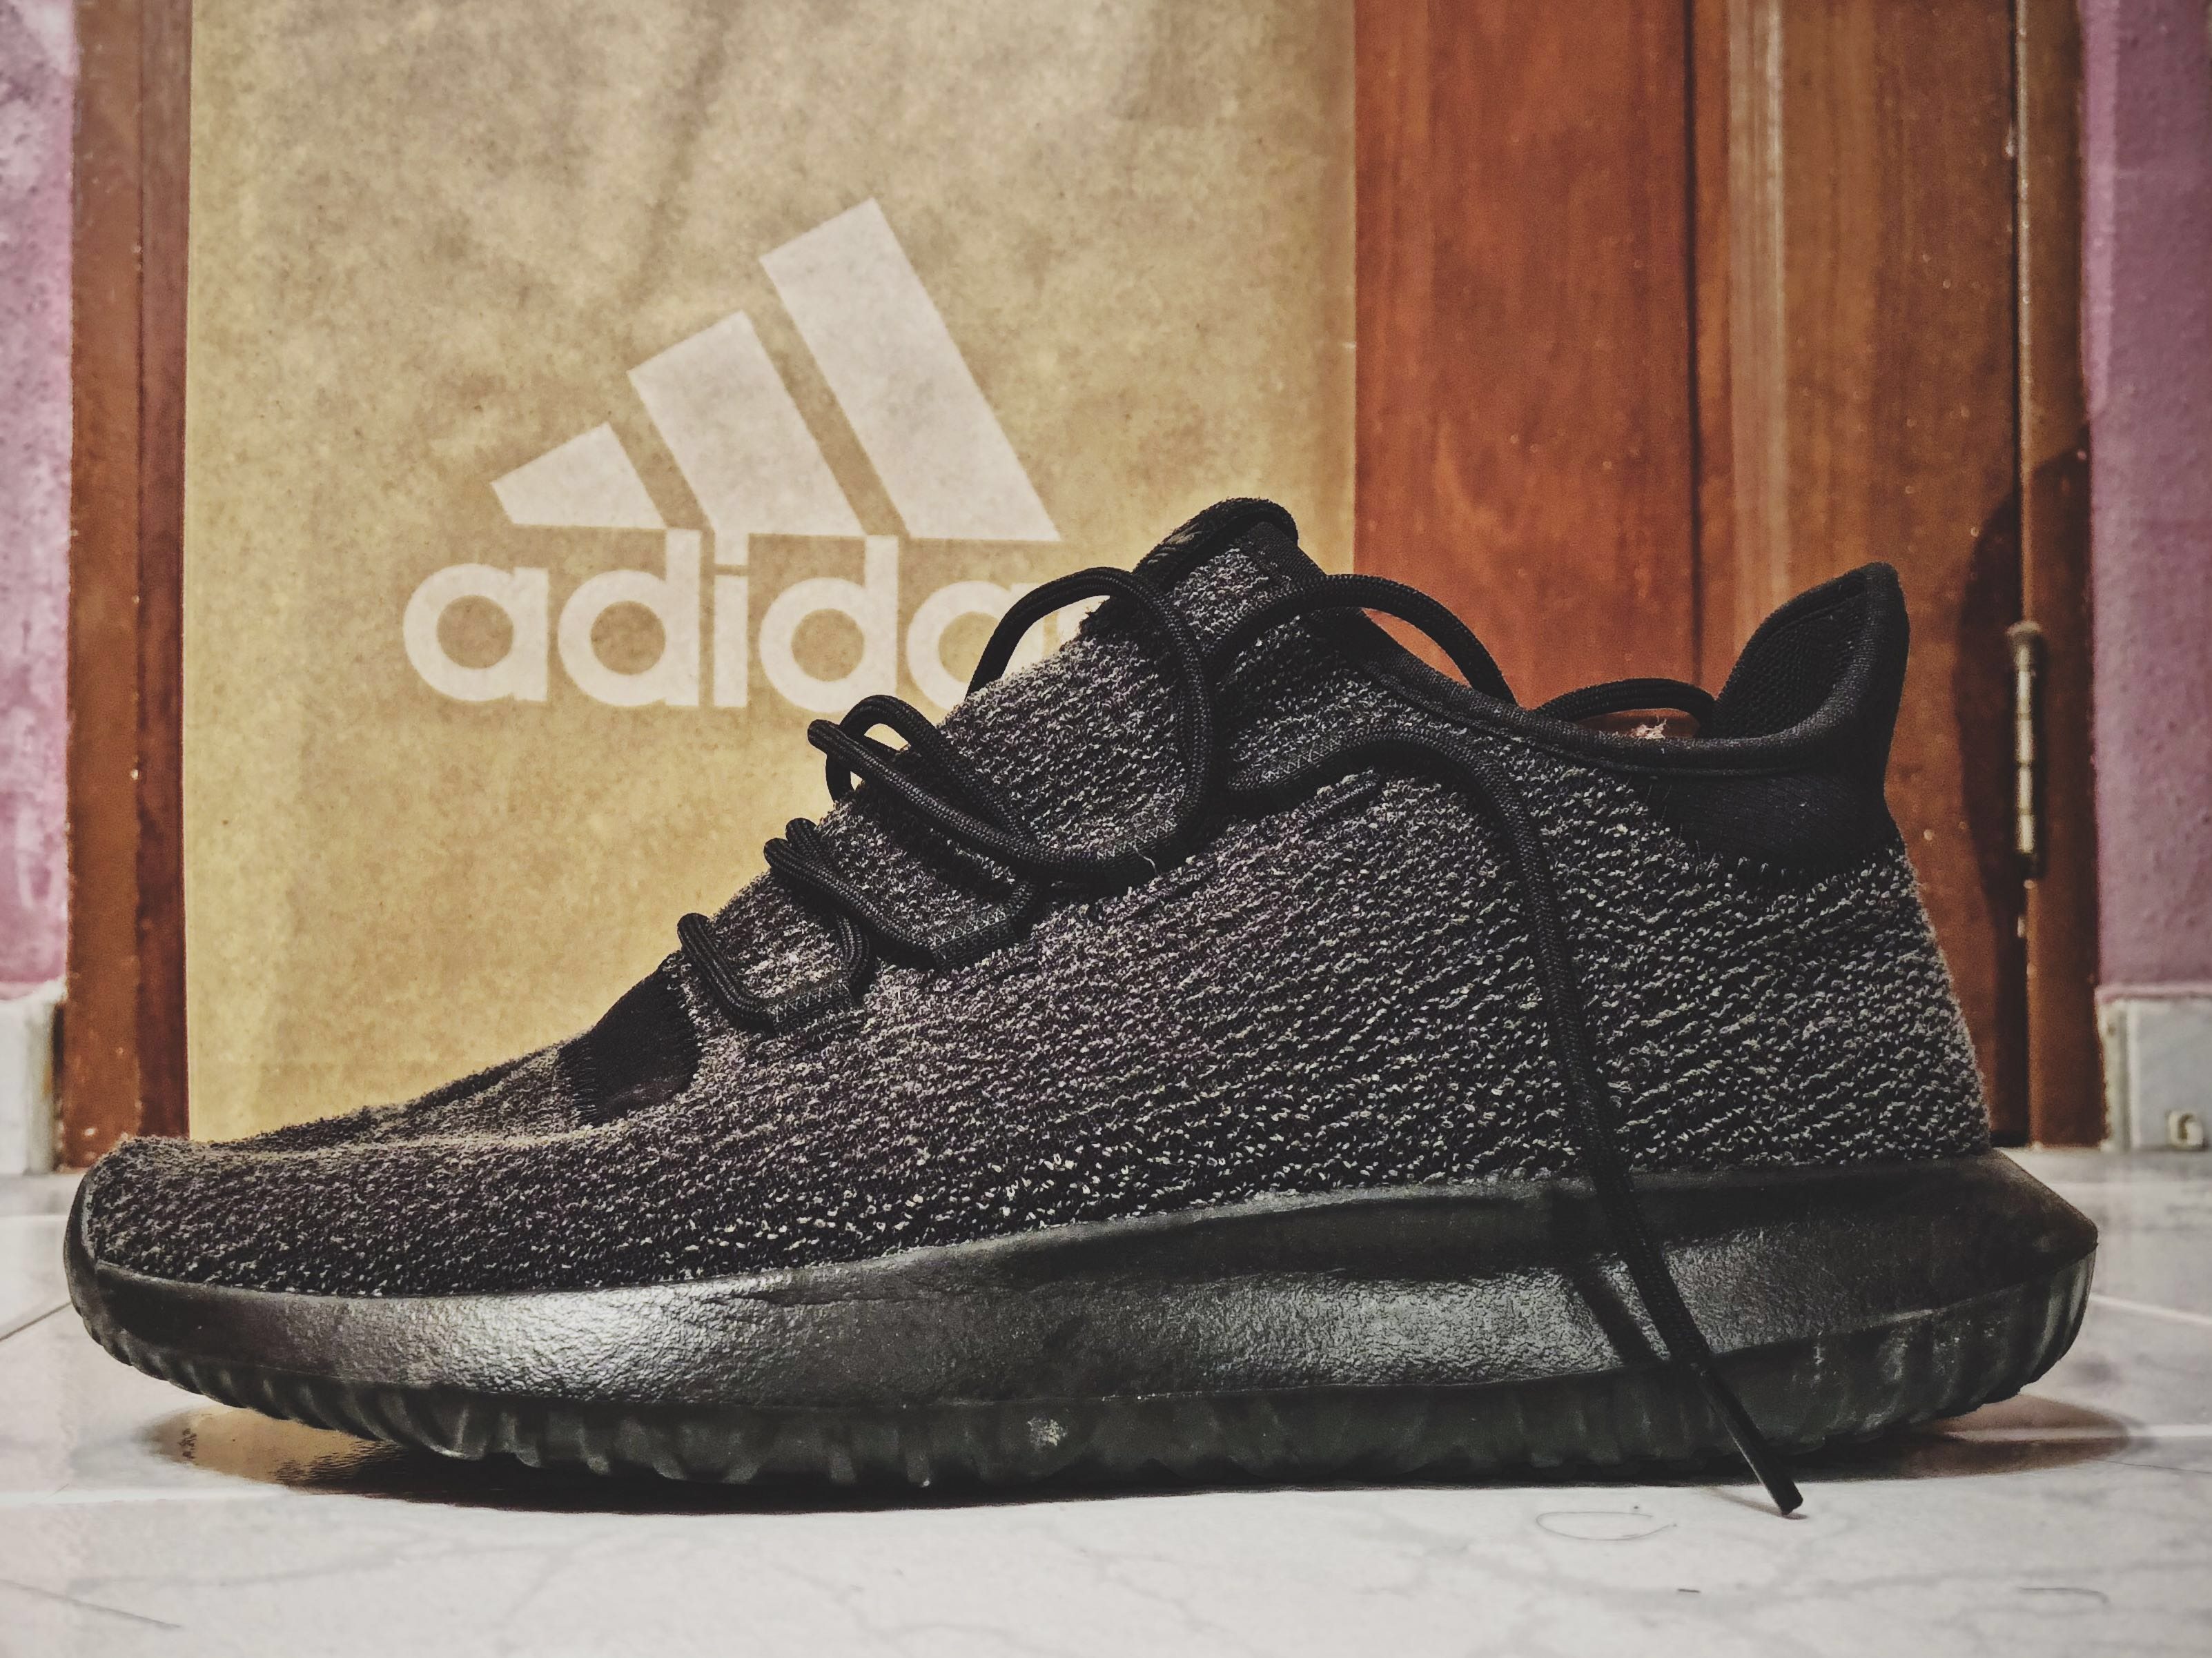 reputable site bff9b cdce6 adidas Originals Tubular Shadow Trainers In Black